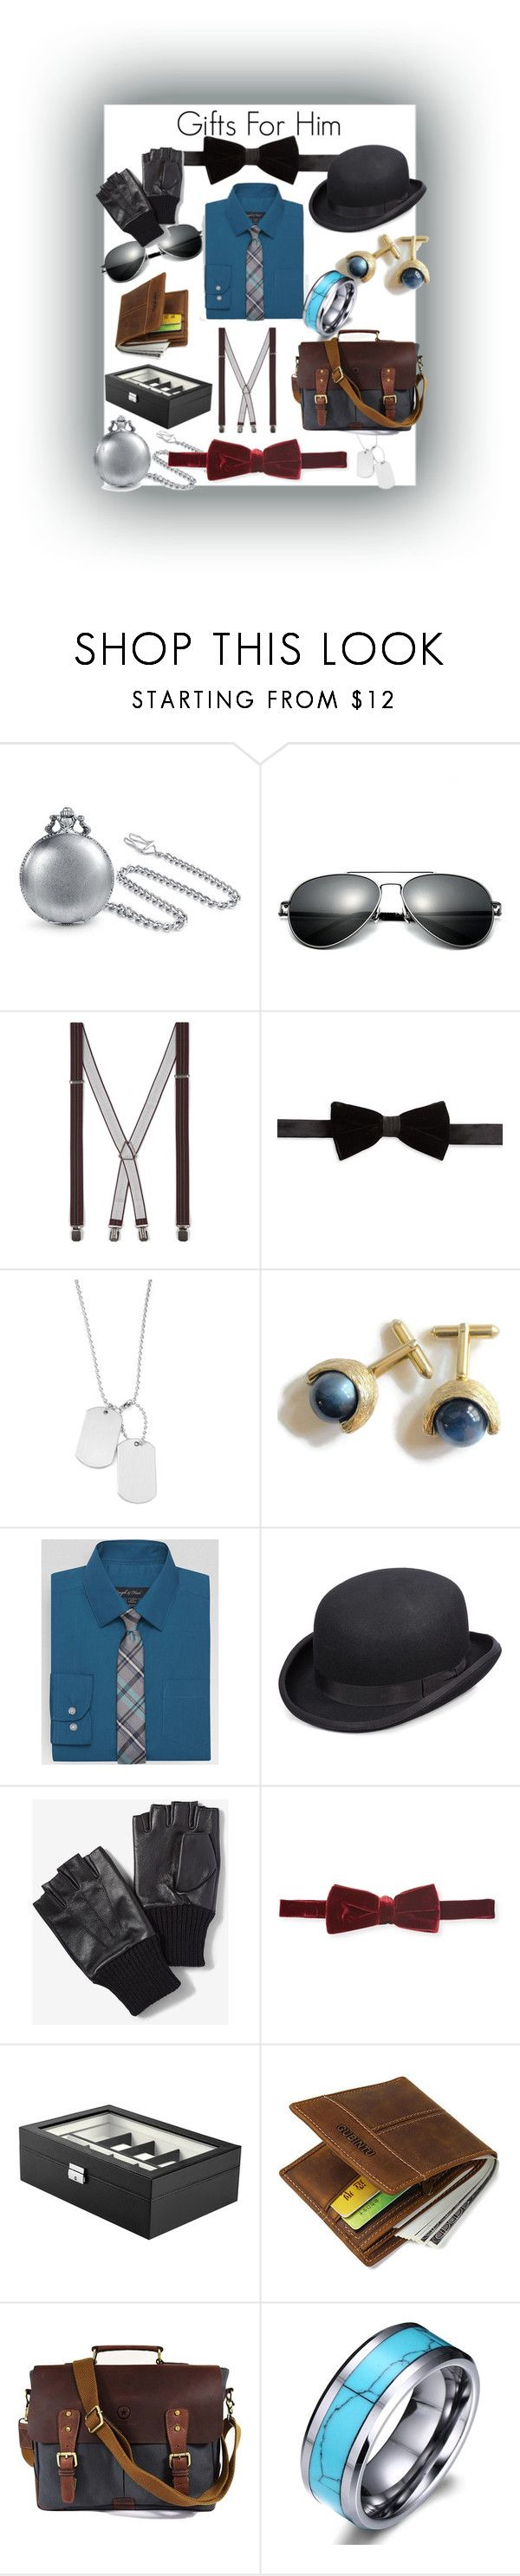 """Gifts For Him"" by pretty-and-practical ❤ liked on Polyvore featuring Bling Jewelry, Topman, Tallia Orange, Variations, Feiss, Scala, Express, Saks Fifth Avenue, JBW and vintage"